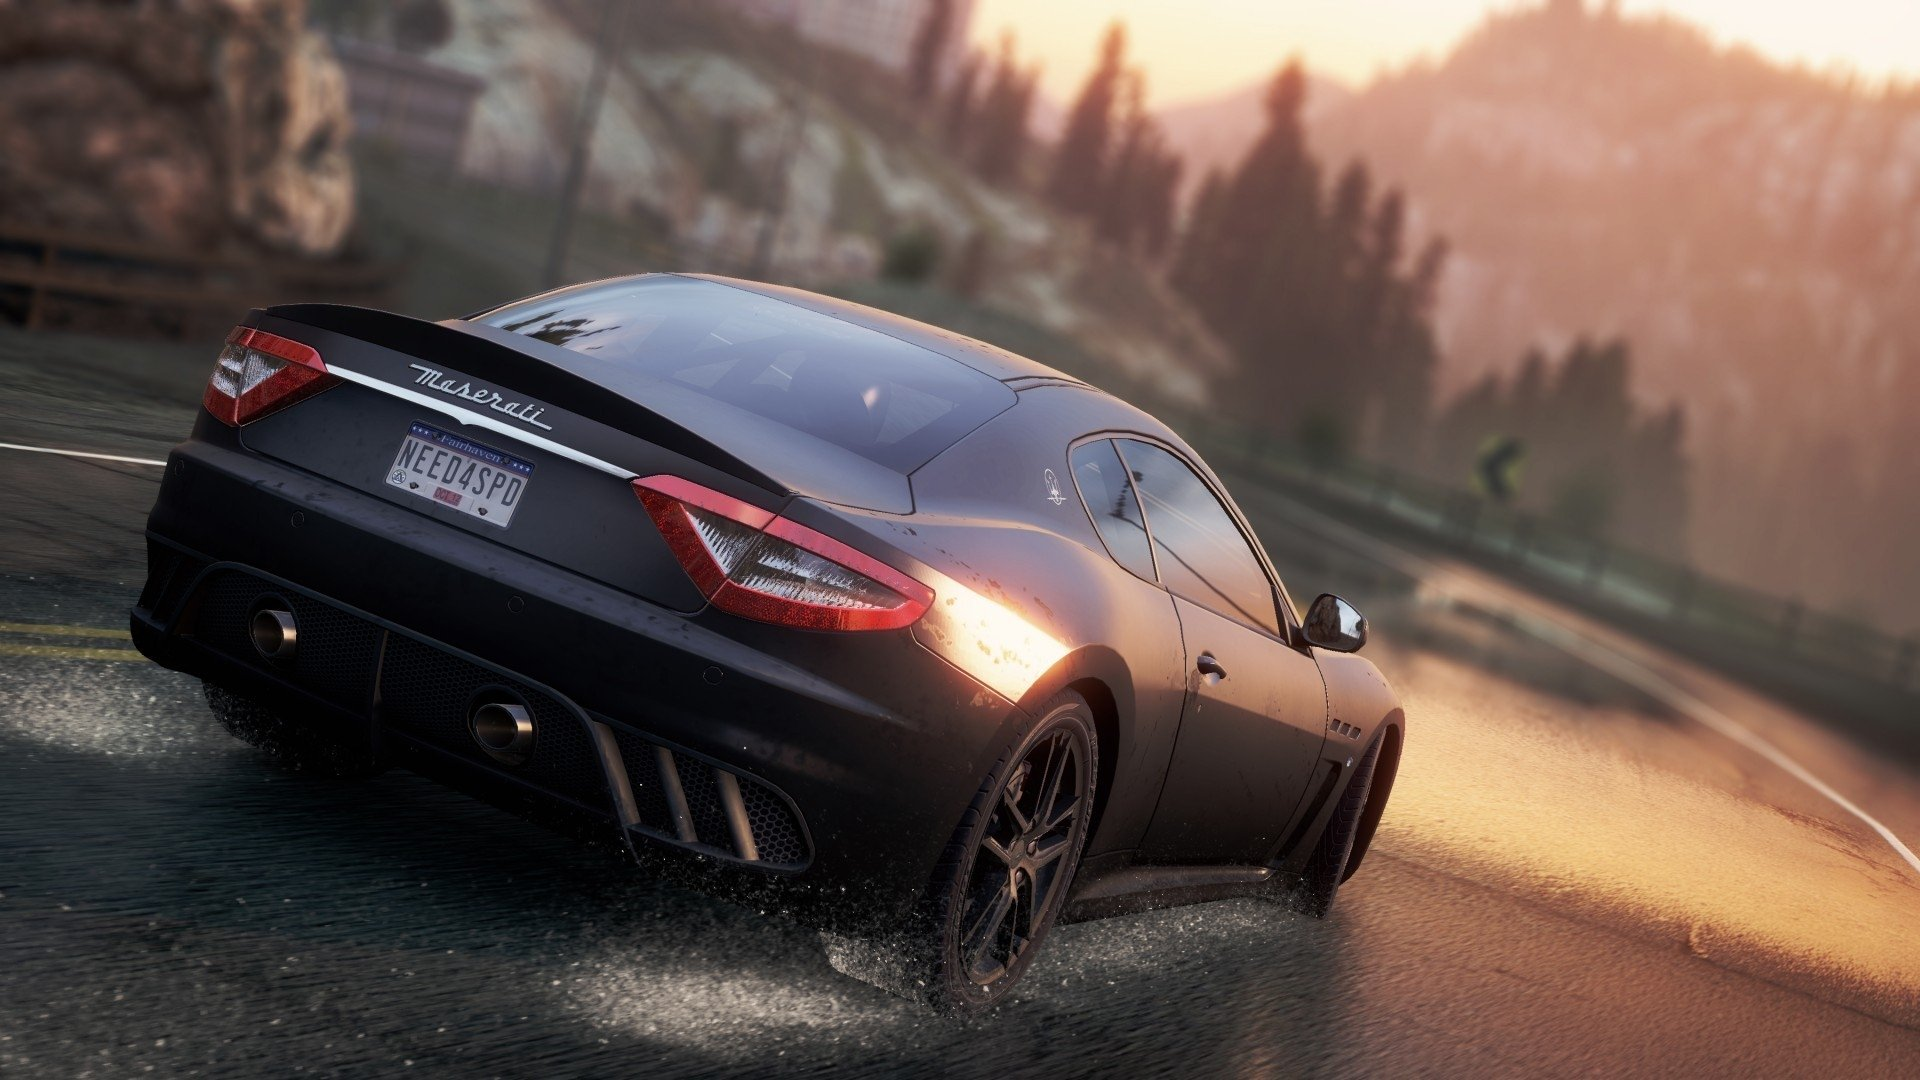 24 Need For Speed Most Wanted 2012 Hd Wallpapers Background